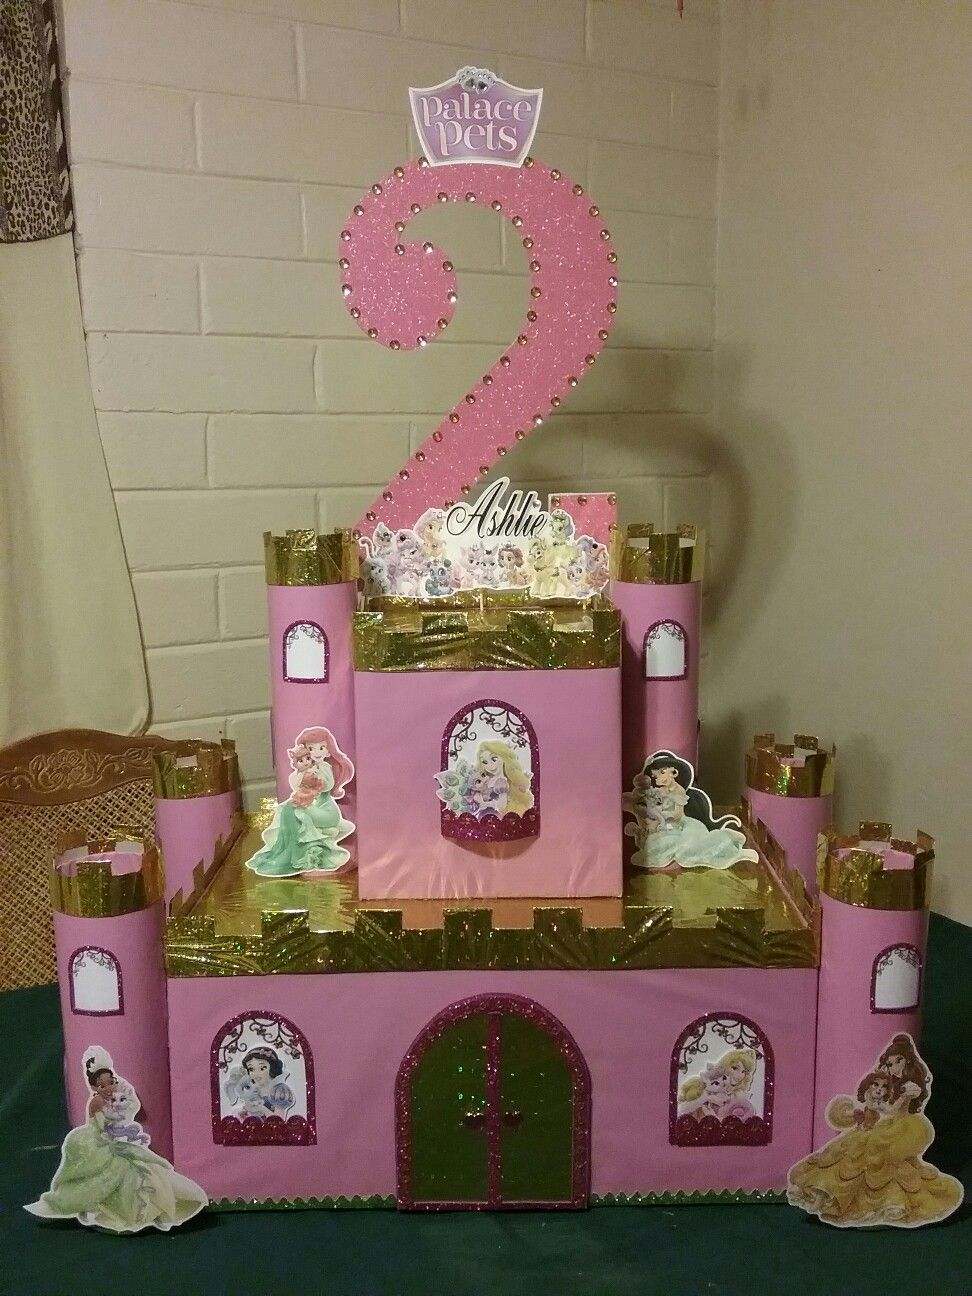 Disney Princess And Palace Pets Castle Centerpiece For Head Table Candyland Party Disney Princess Party Candy Castle